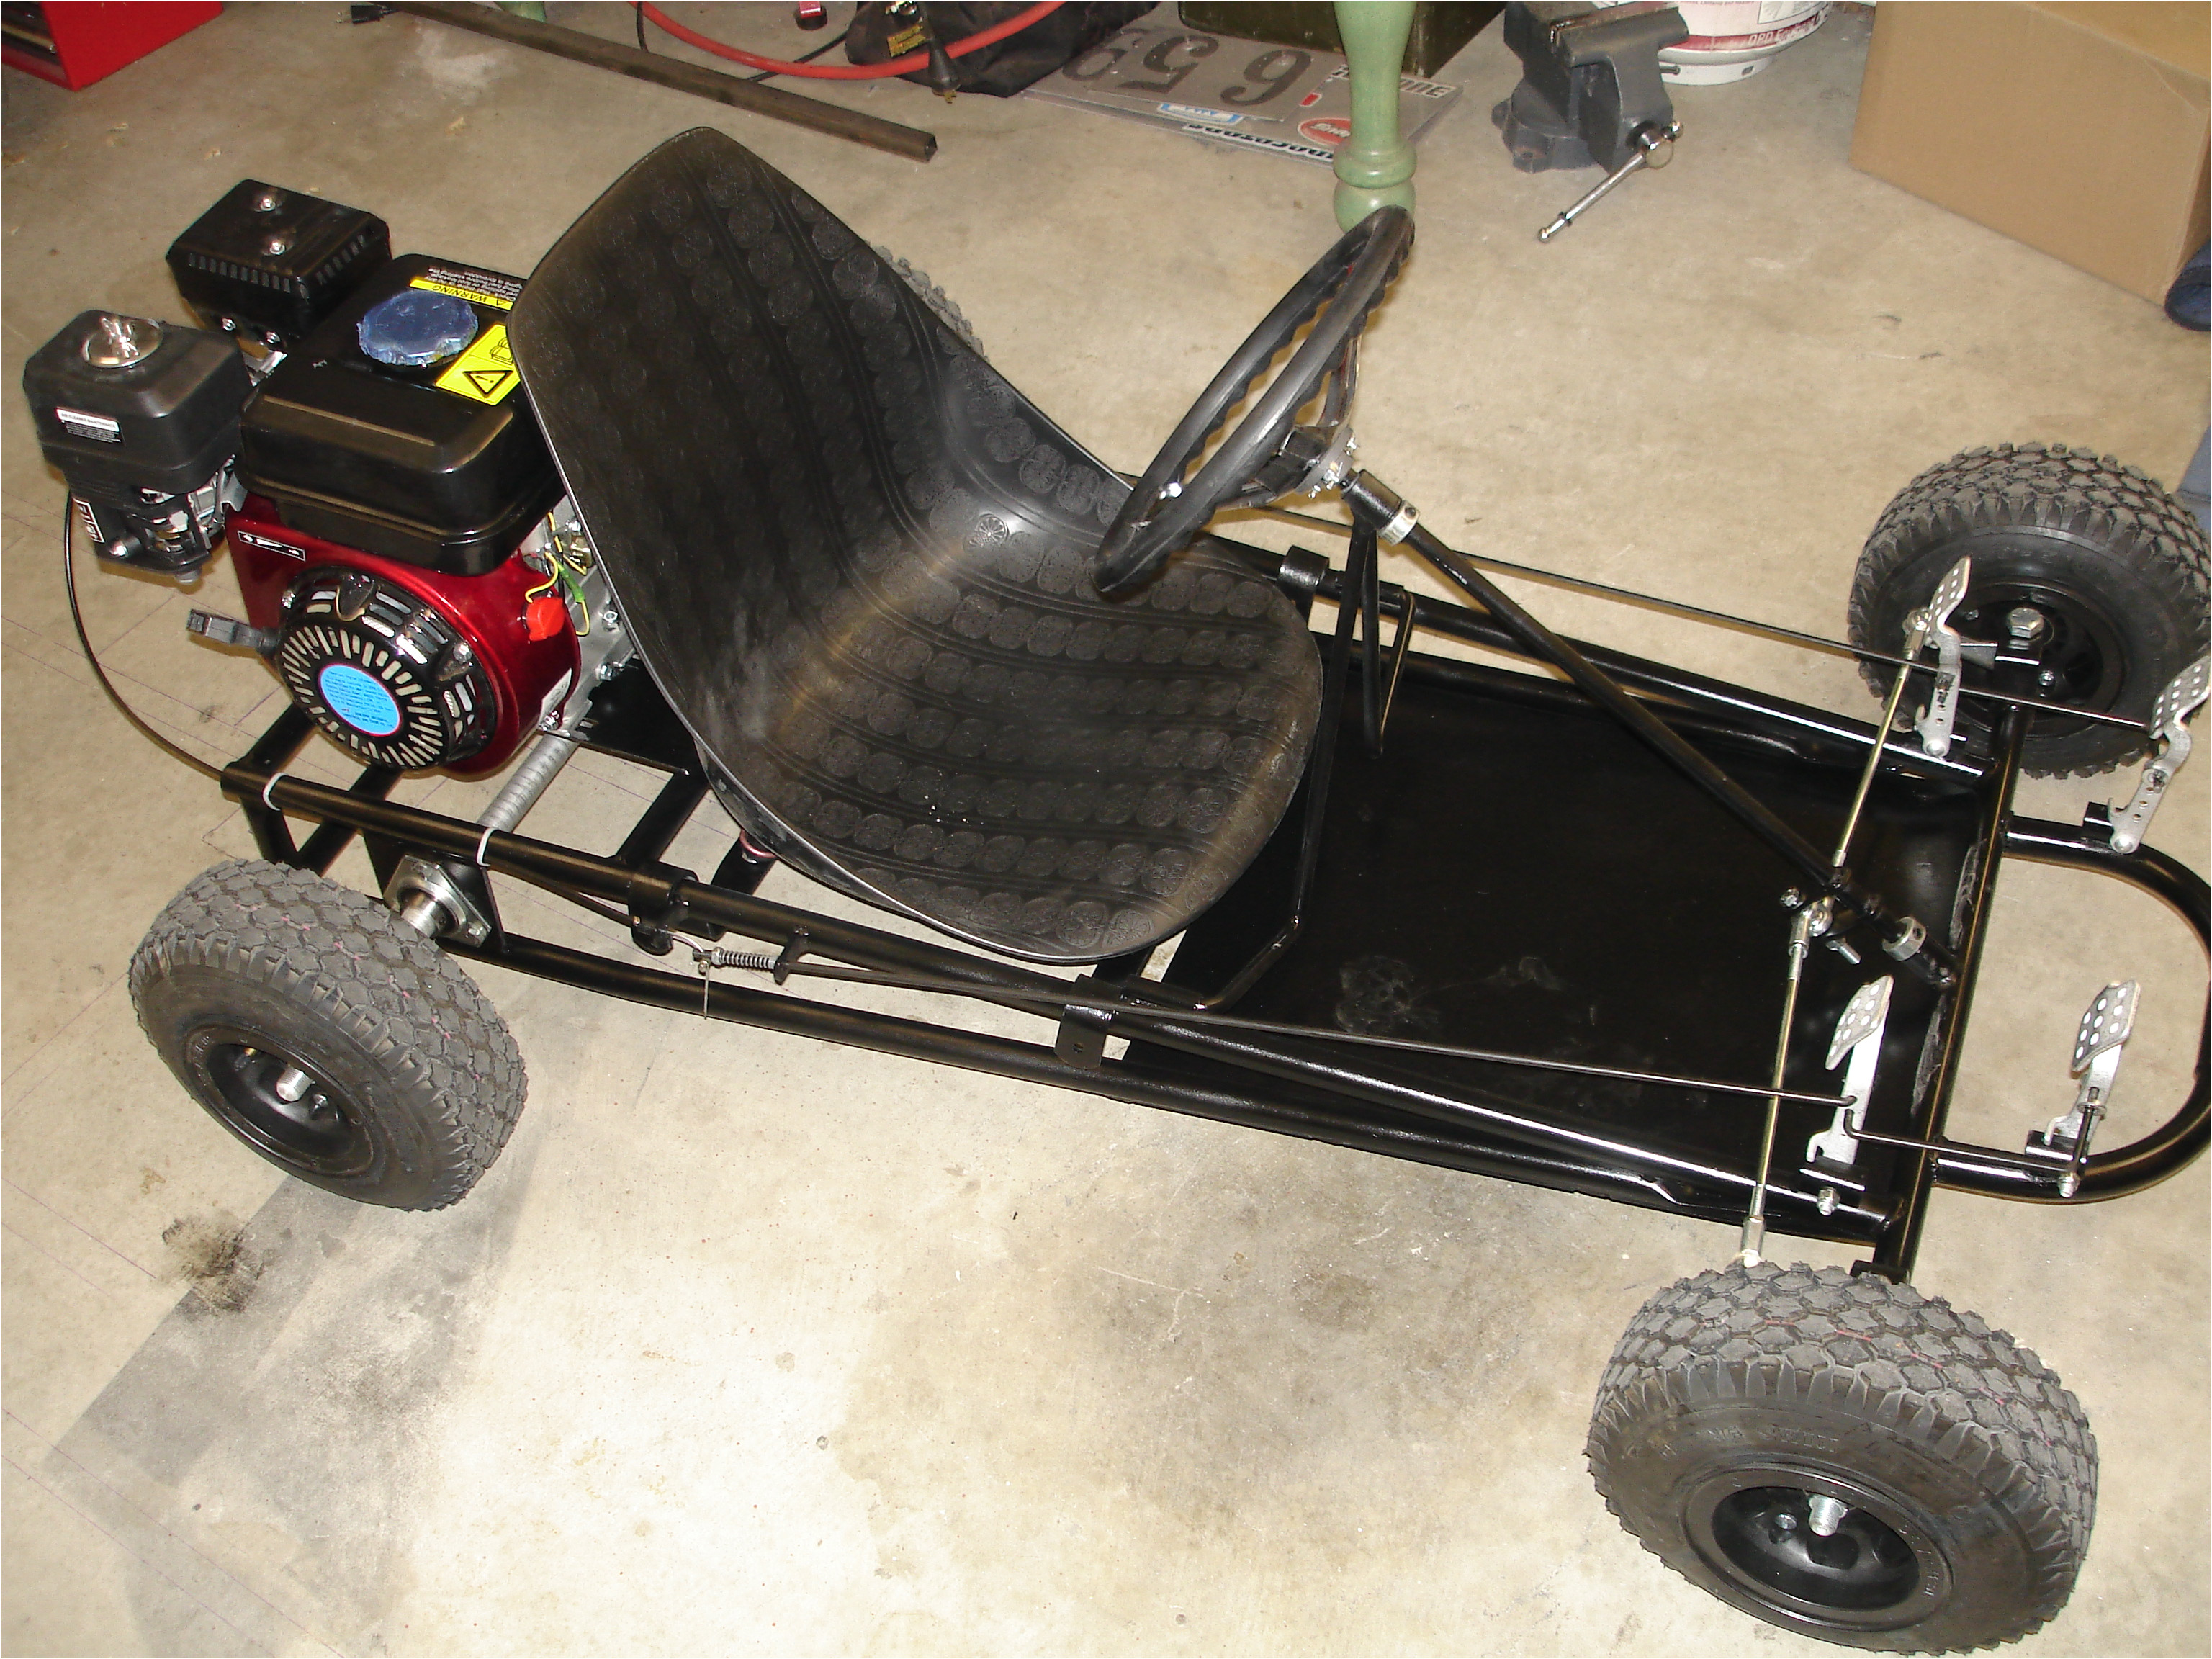 Home Built Go Kart Plans Go Karts Homemade Free Plans Floor Plans